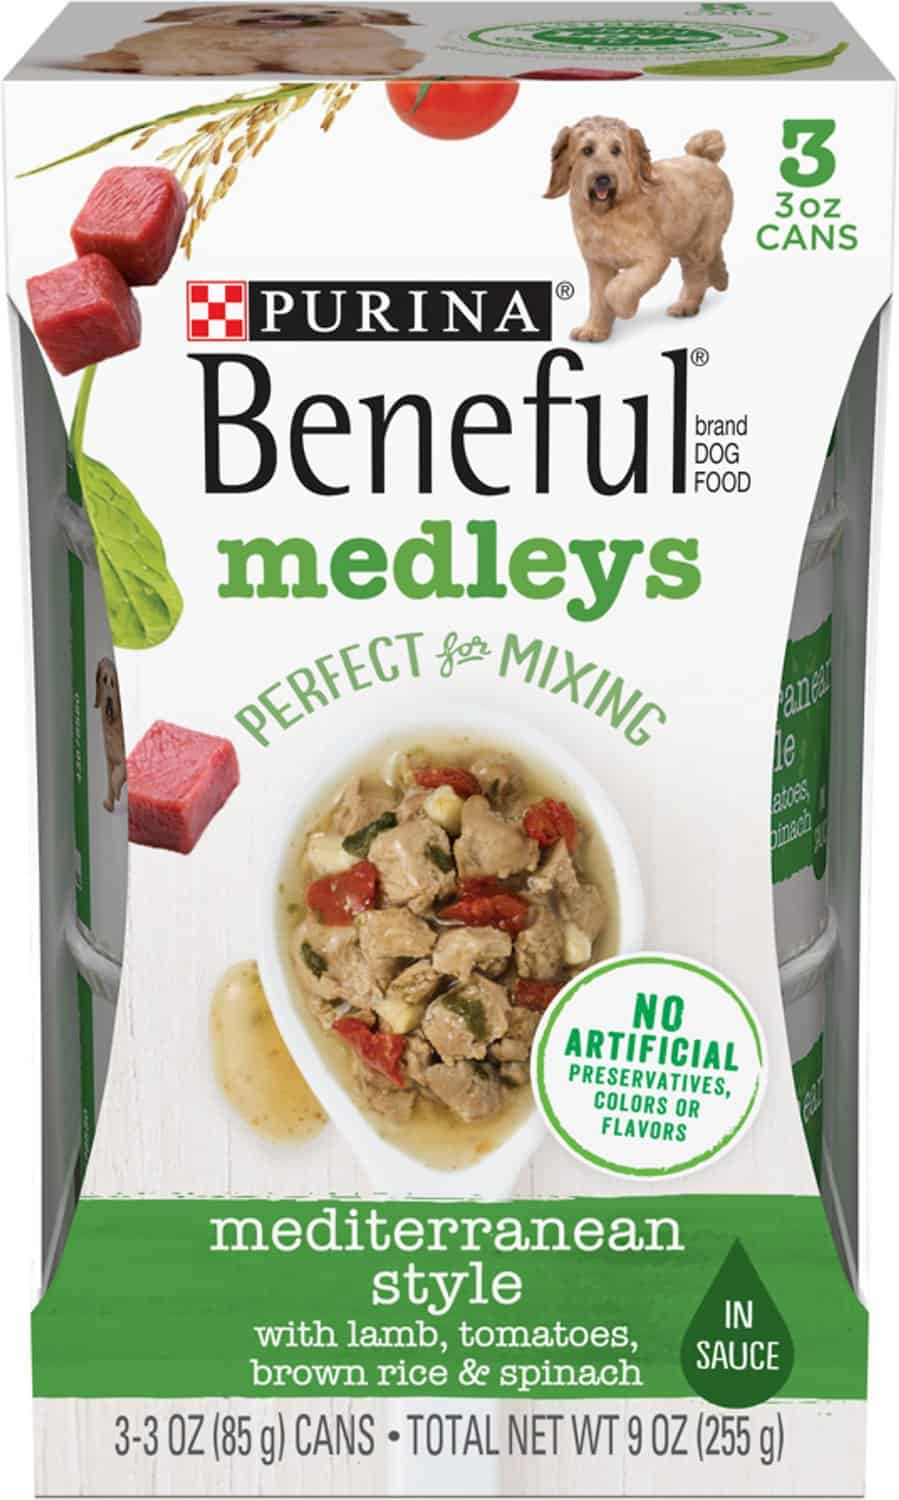 Beneful Dog Food Review 2020: The Good & The Bad Revealed! 31